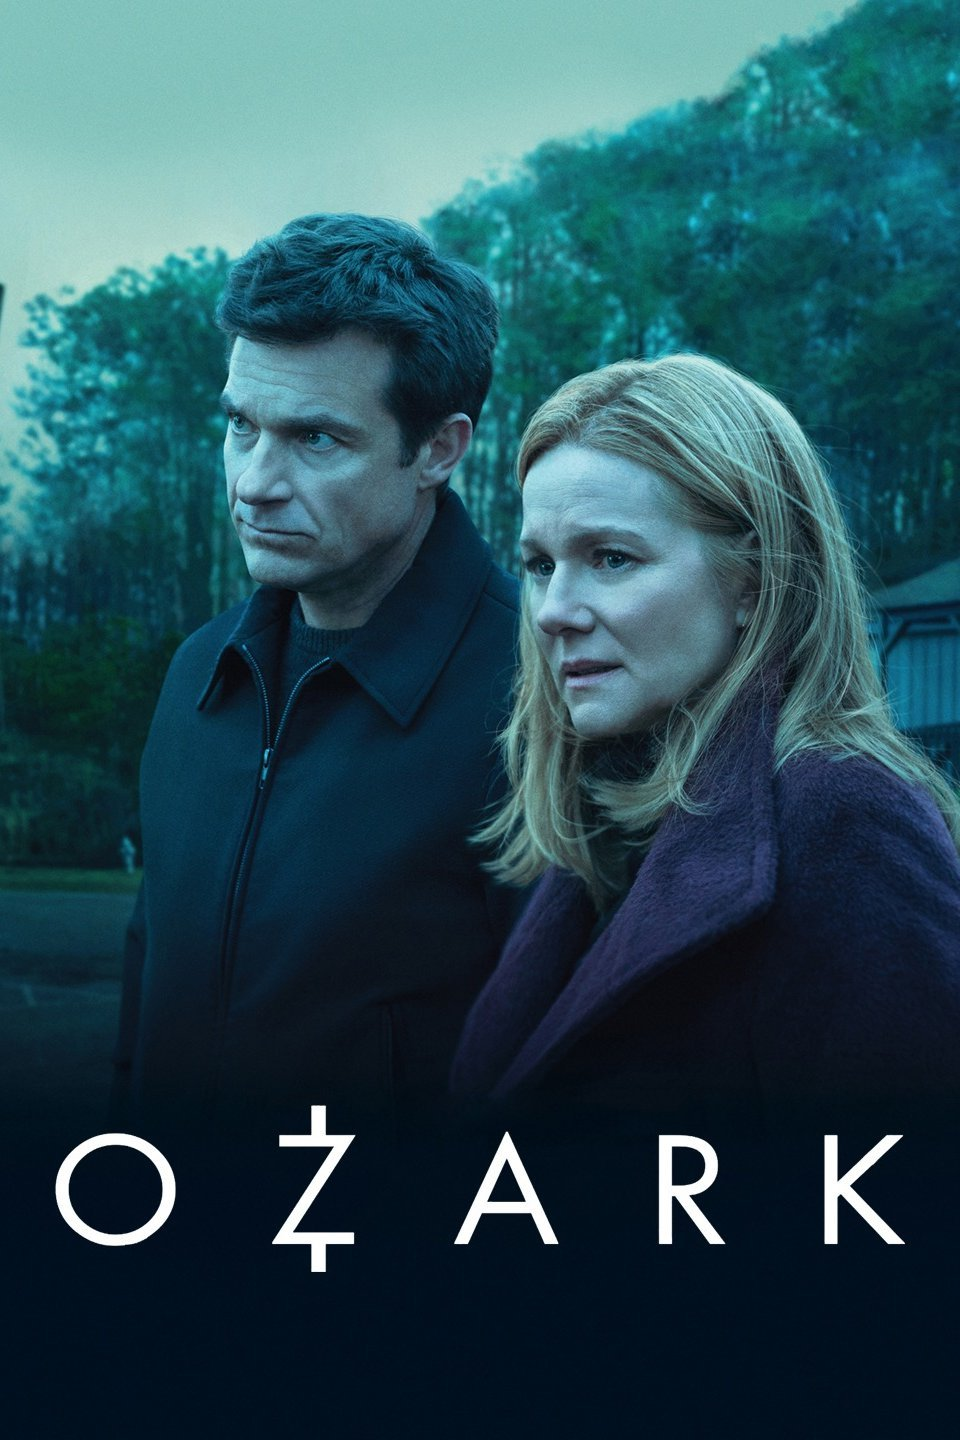 Ozark - Ozark is about Marty Byrde a financial planner who has to relocate his family from Chicago to a ghost town called 'Ozark' after a money laundering scheme goes wrong. Marty has to find different businesses in Ozark to use to launder the Mexican druglords money, Marty steps on the toes of some of the locals which brings him more trouble.2 seasons